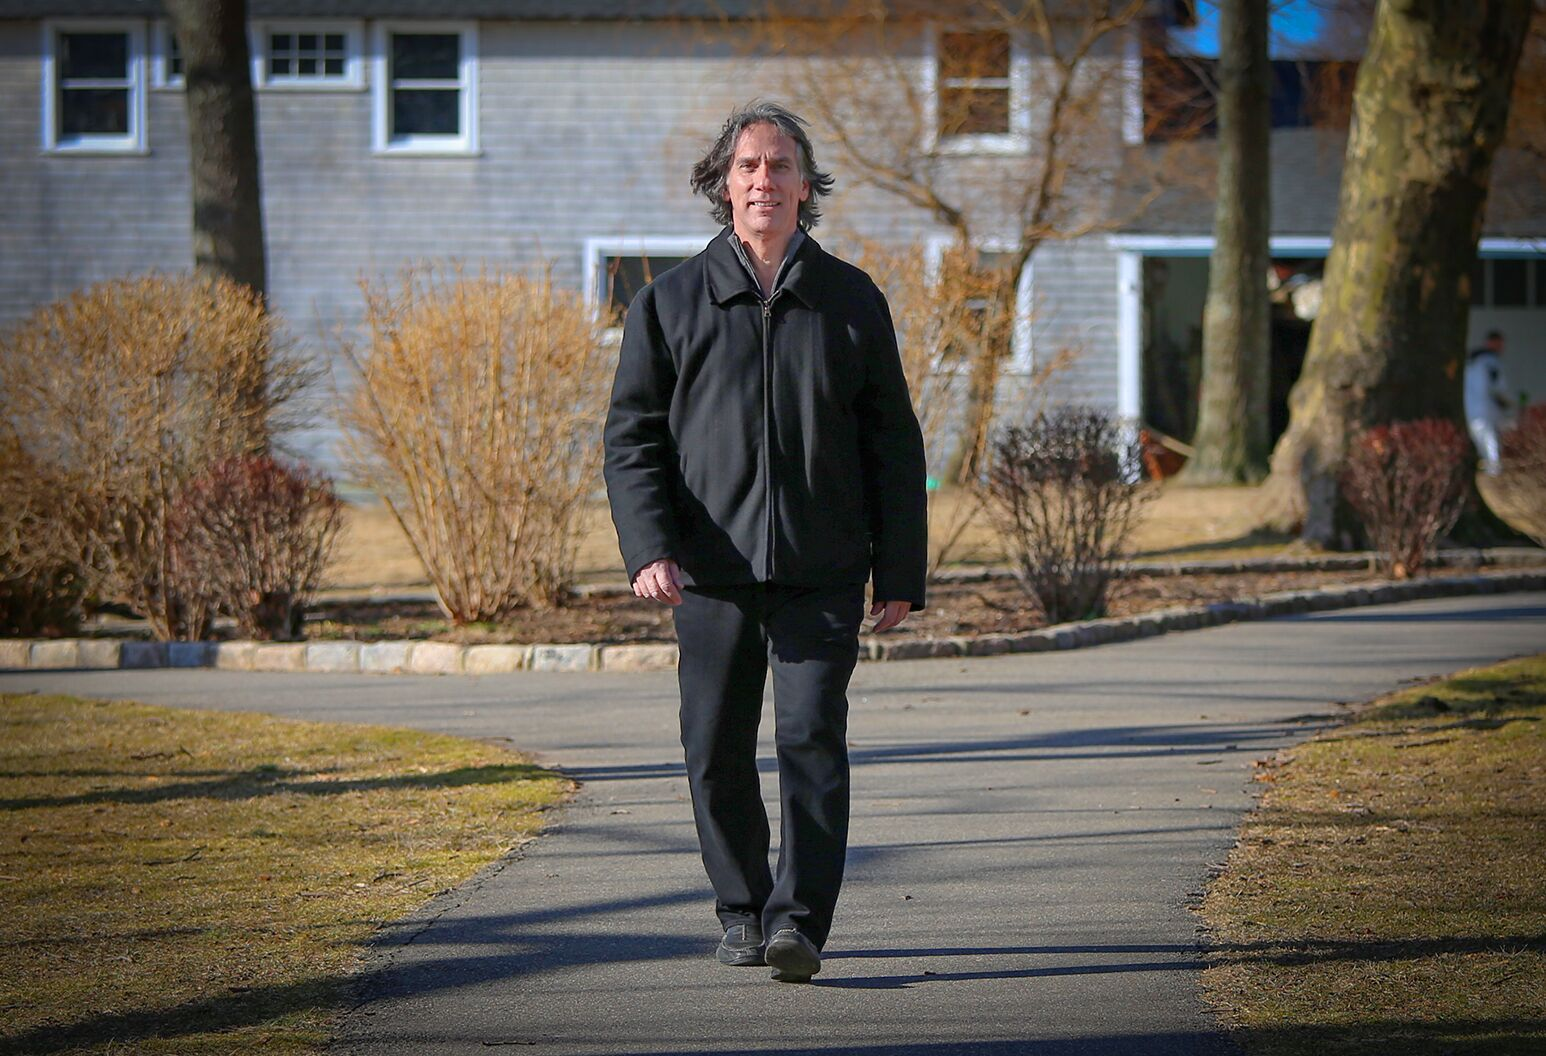 Man in his 60s walking outside on sunny day.